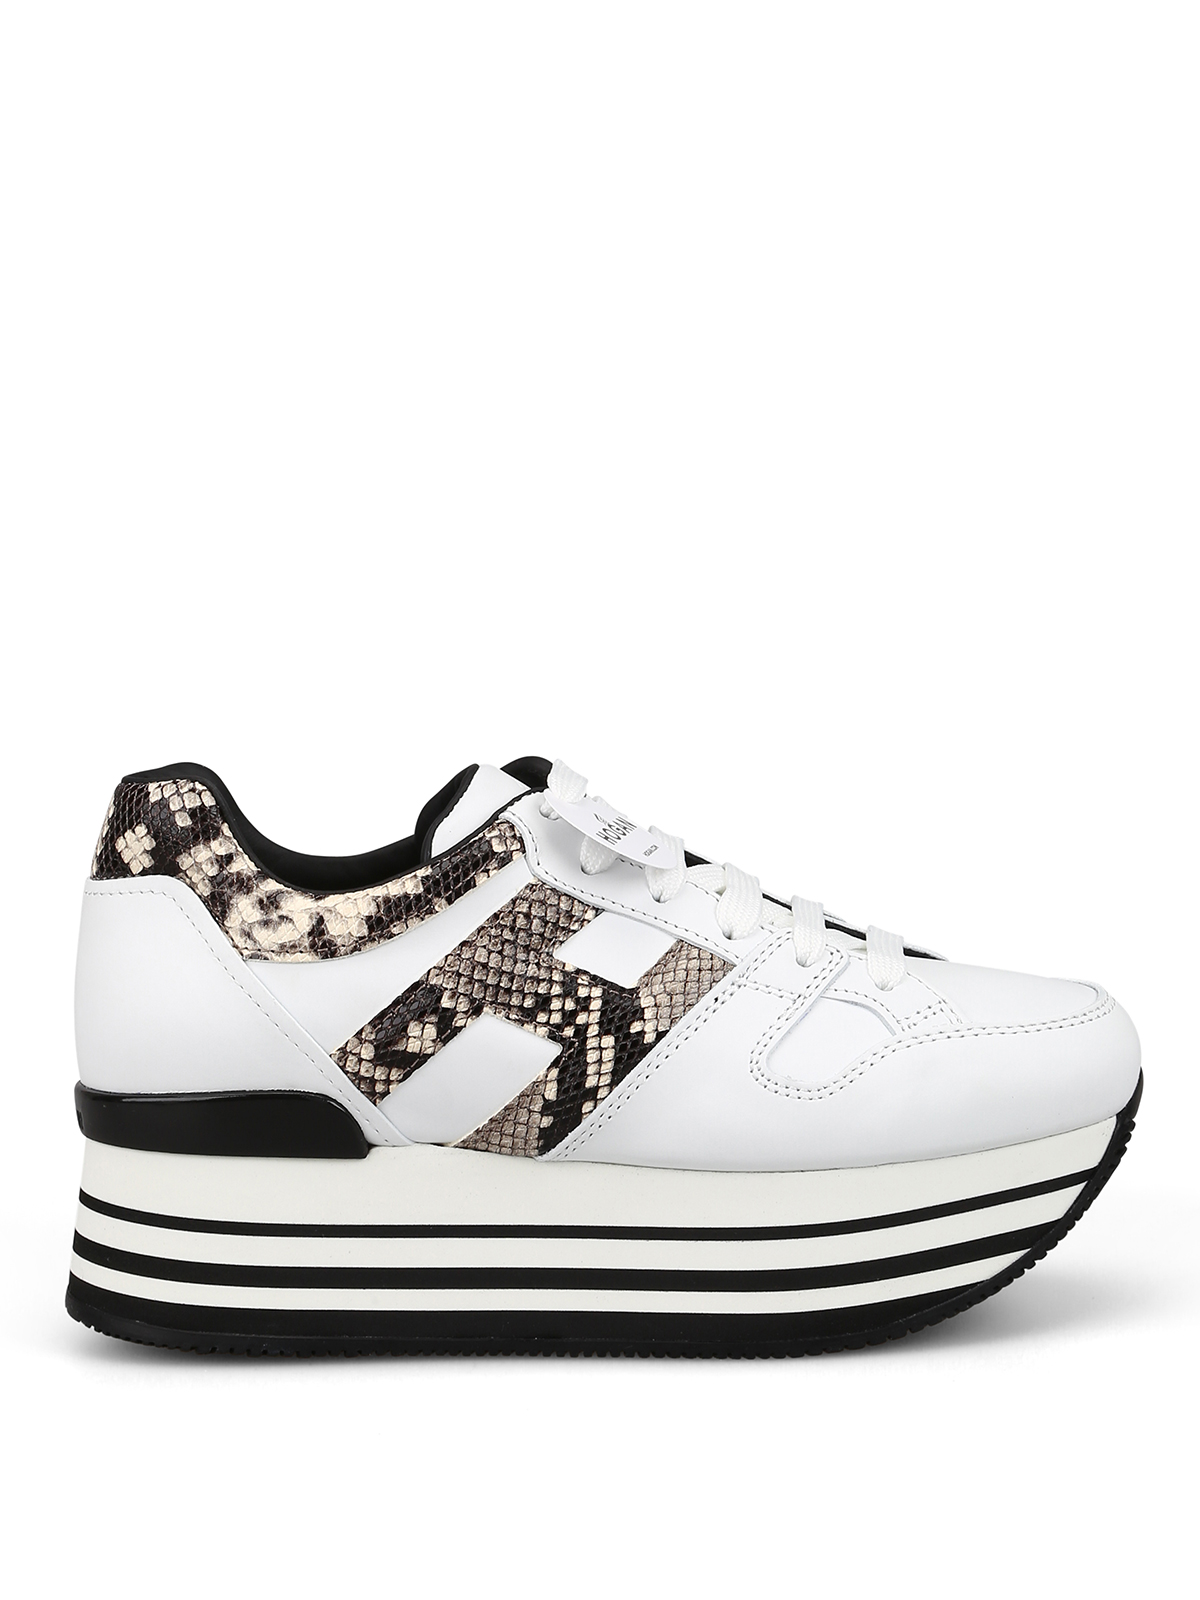 Hogan - Maxi H222 sneakers with reptile print inserts - trainers ...